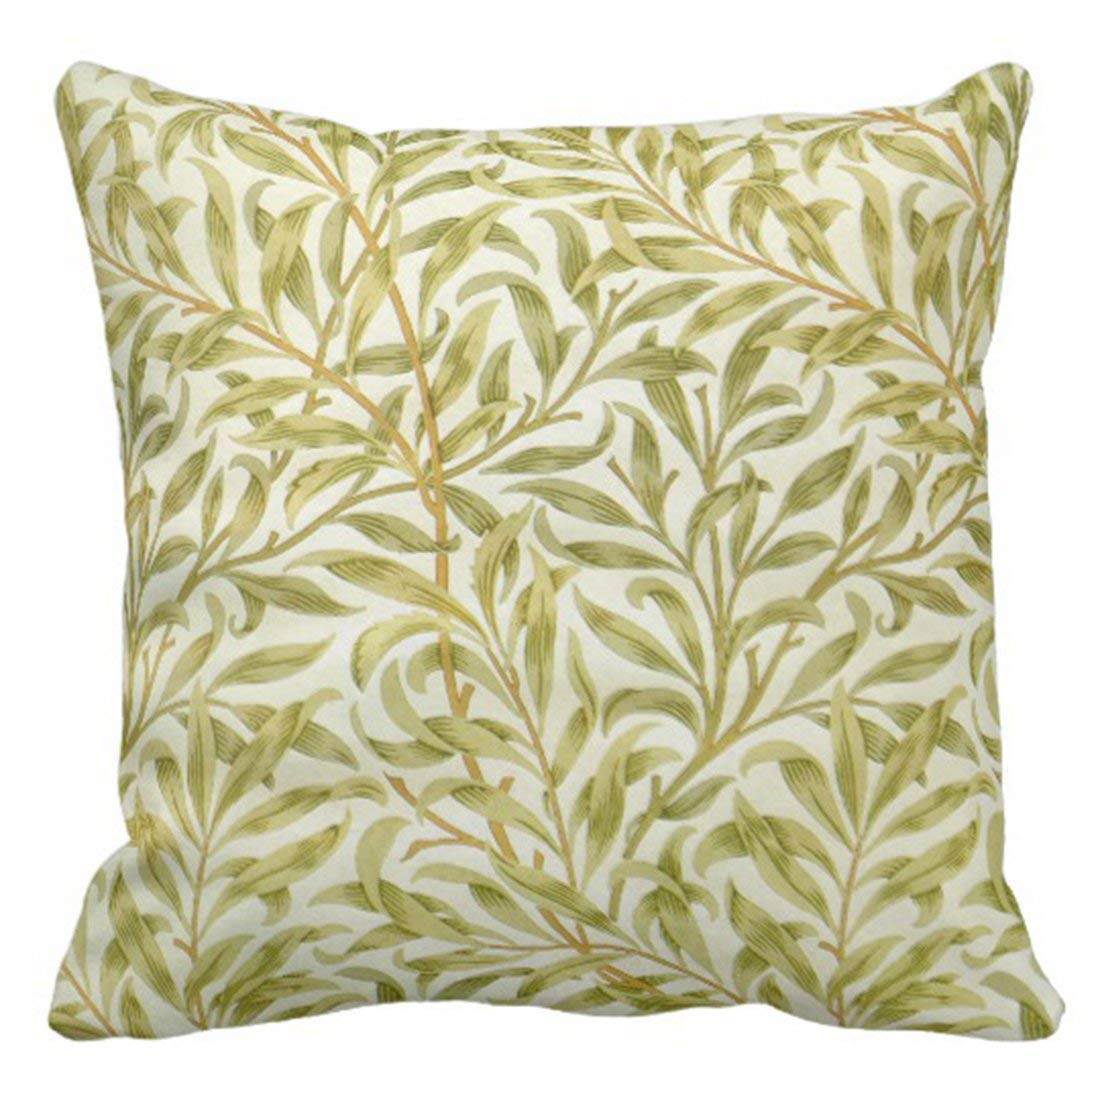 BPBOP Green Pale William Morris Willow Floral Leaves Pillowcase Cover 16x16 inch